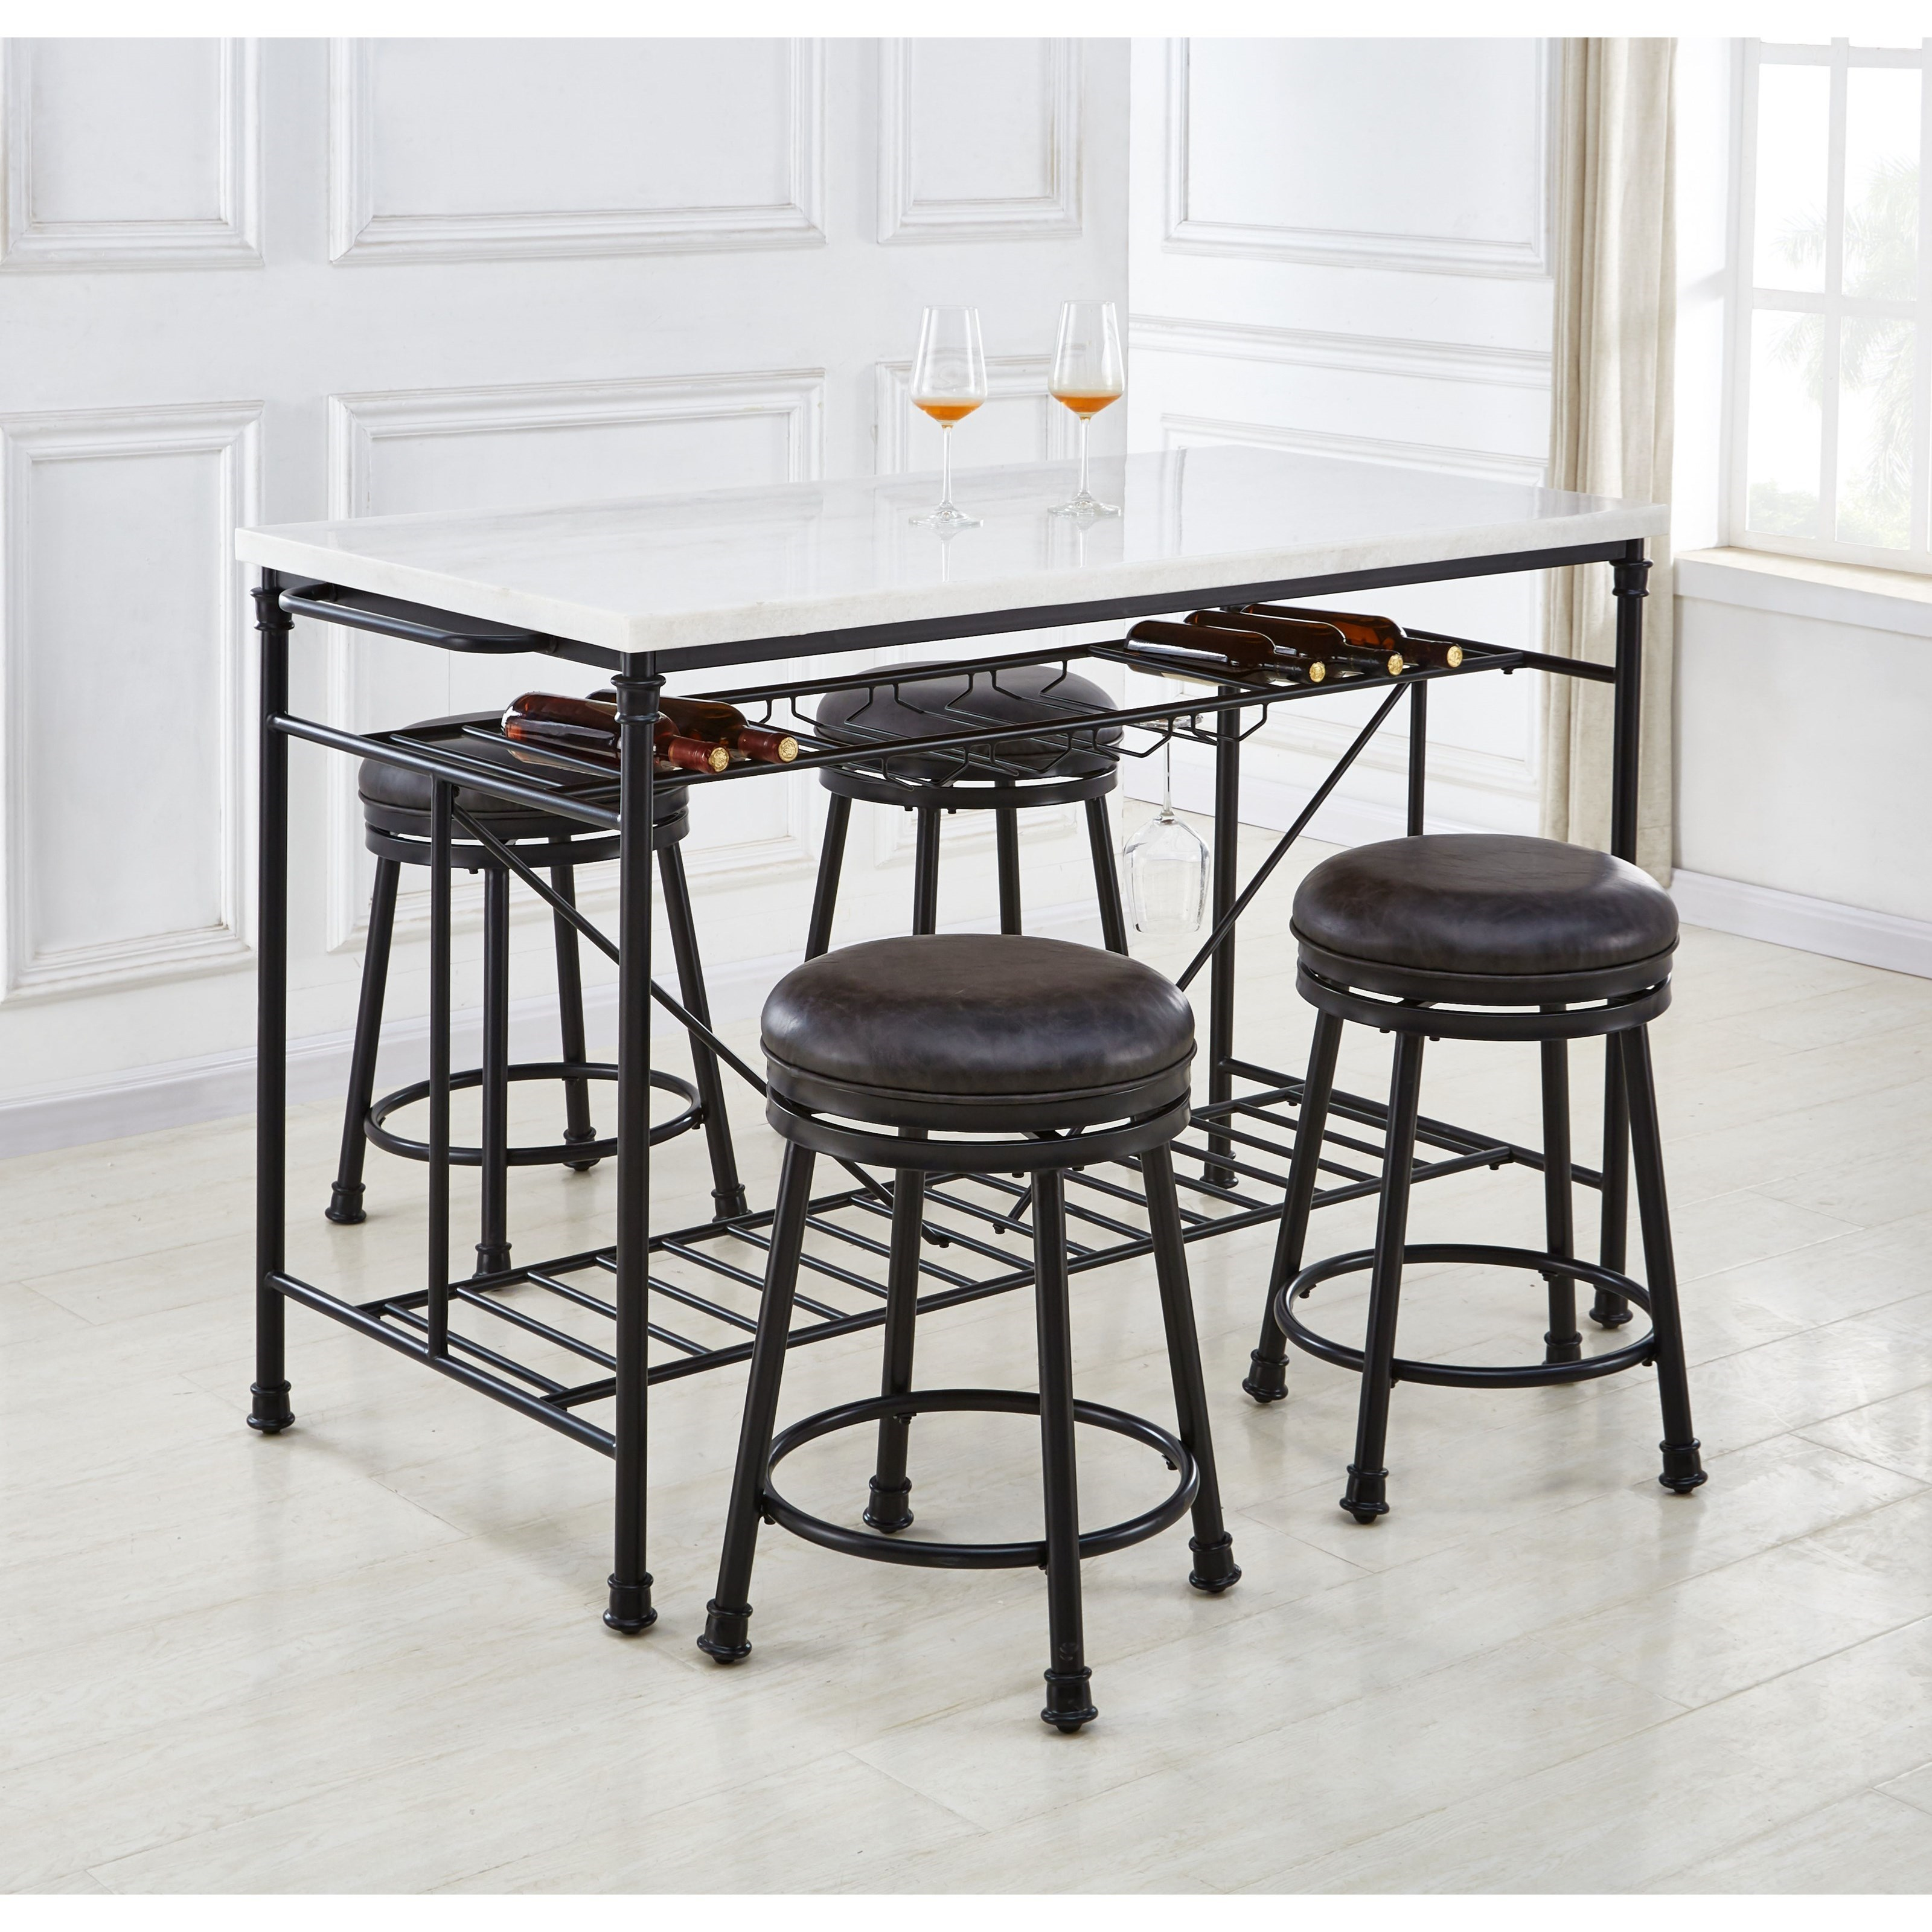 Claire 5-Piece Kitchen Island and Stool Set by Steve Silver at Standard Furniture